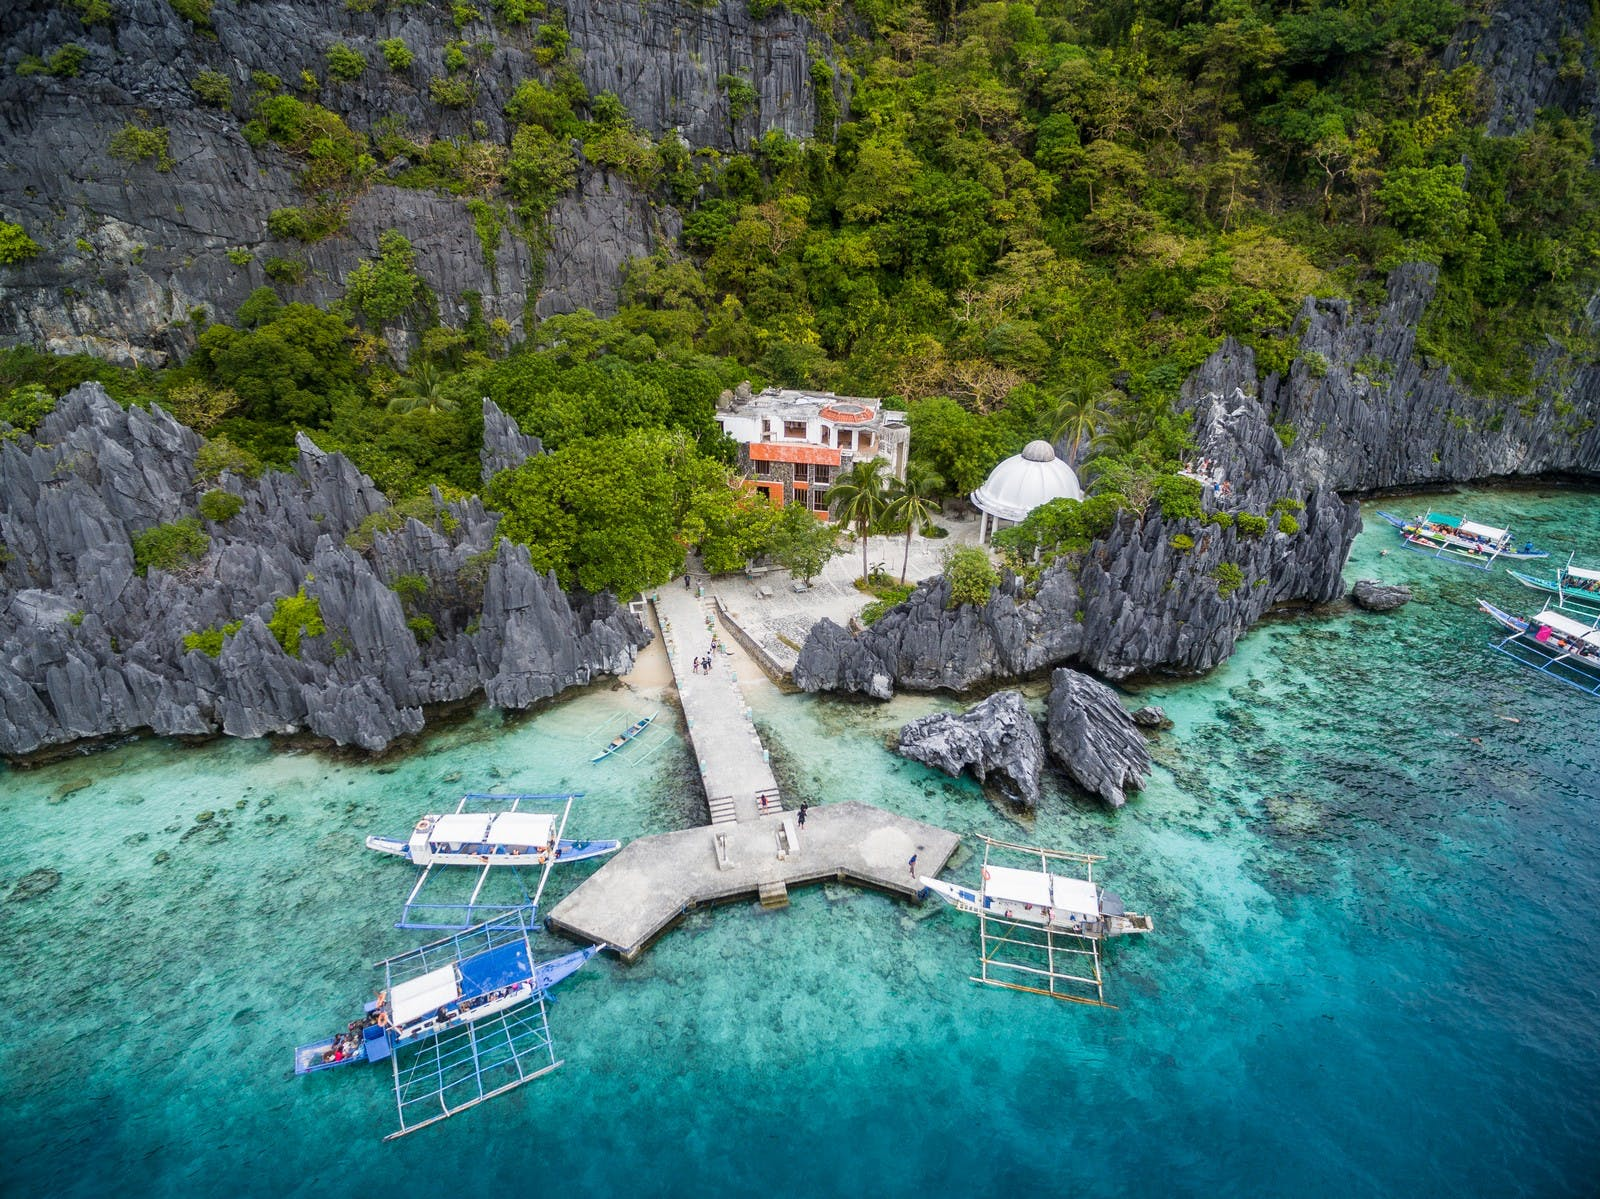 El Nido Matinloc Island Premium Private Tour with Transfers & Kayak | Hidden Beach & Secret Beach